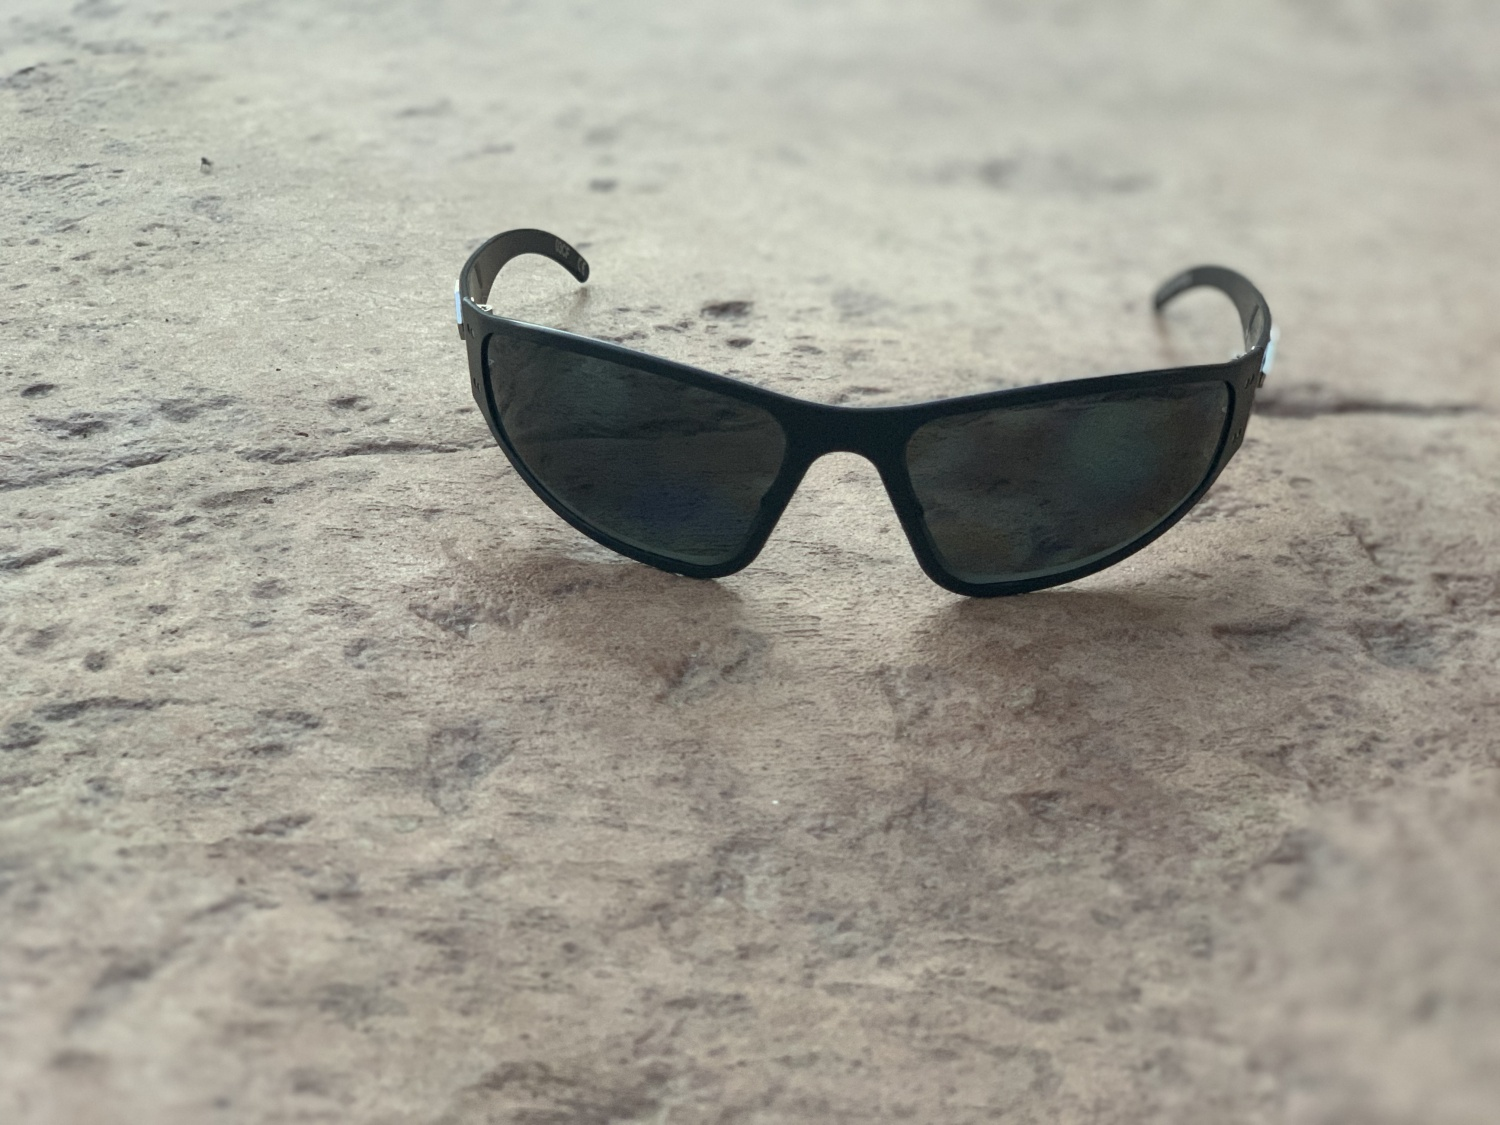 The Wraptors have a more tapered shape and the frame wraps around your face.